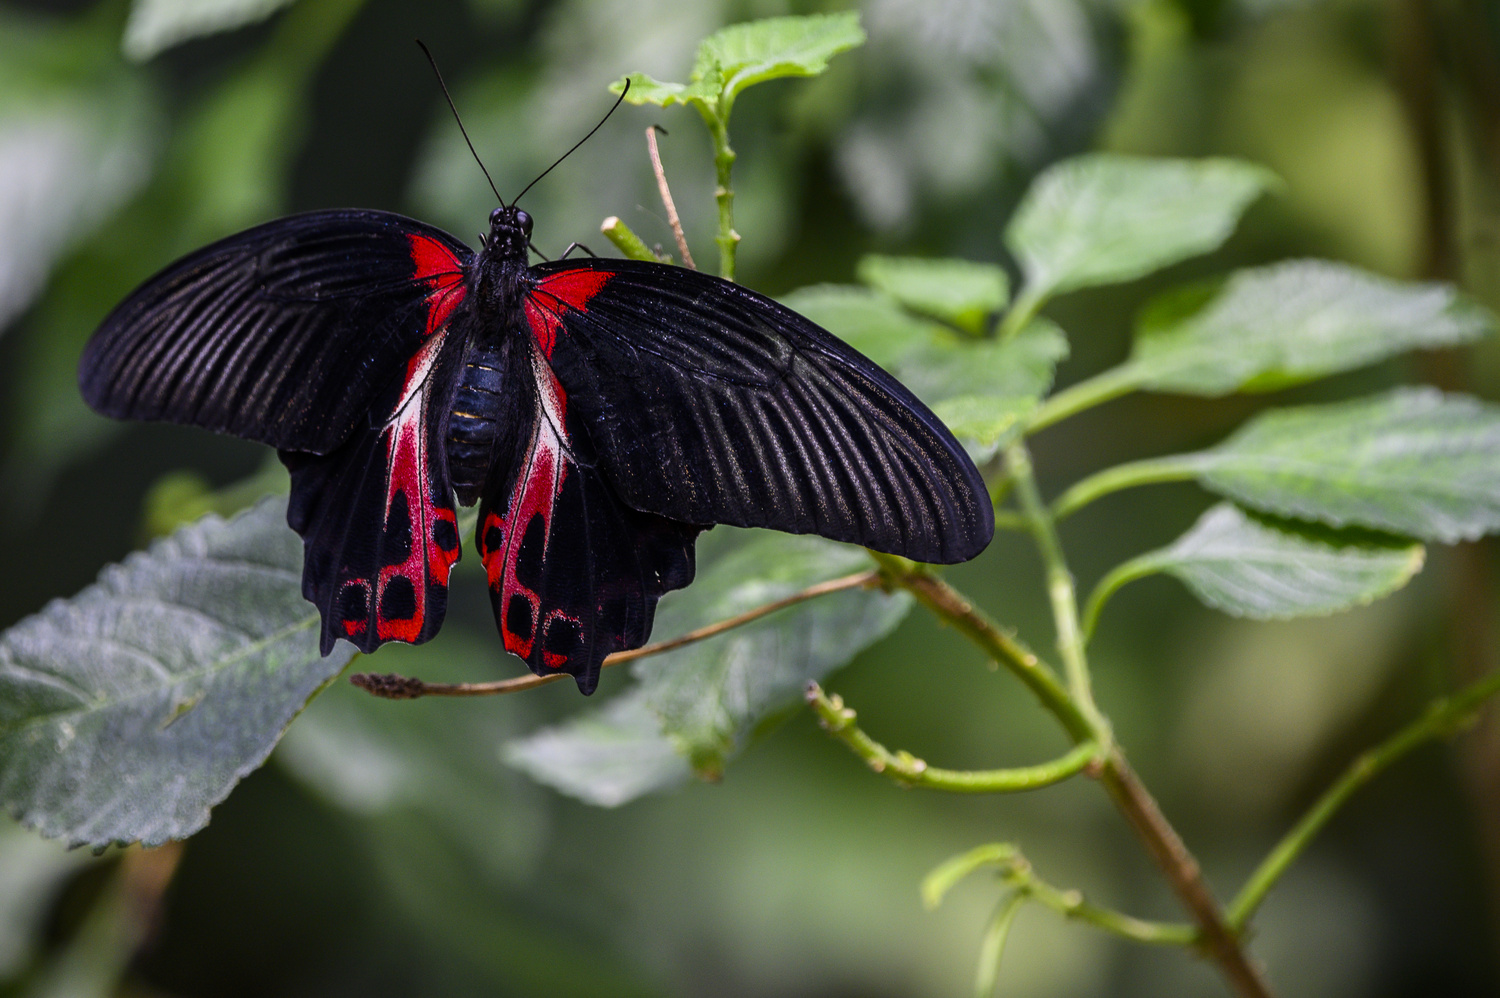 Red and Black Butterfly by Dennis Billstein